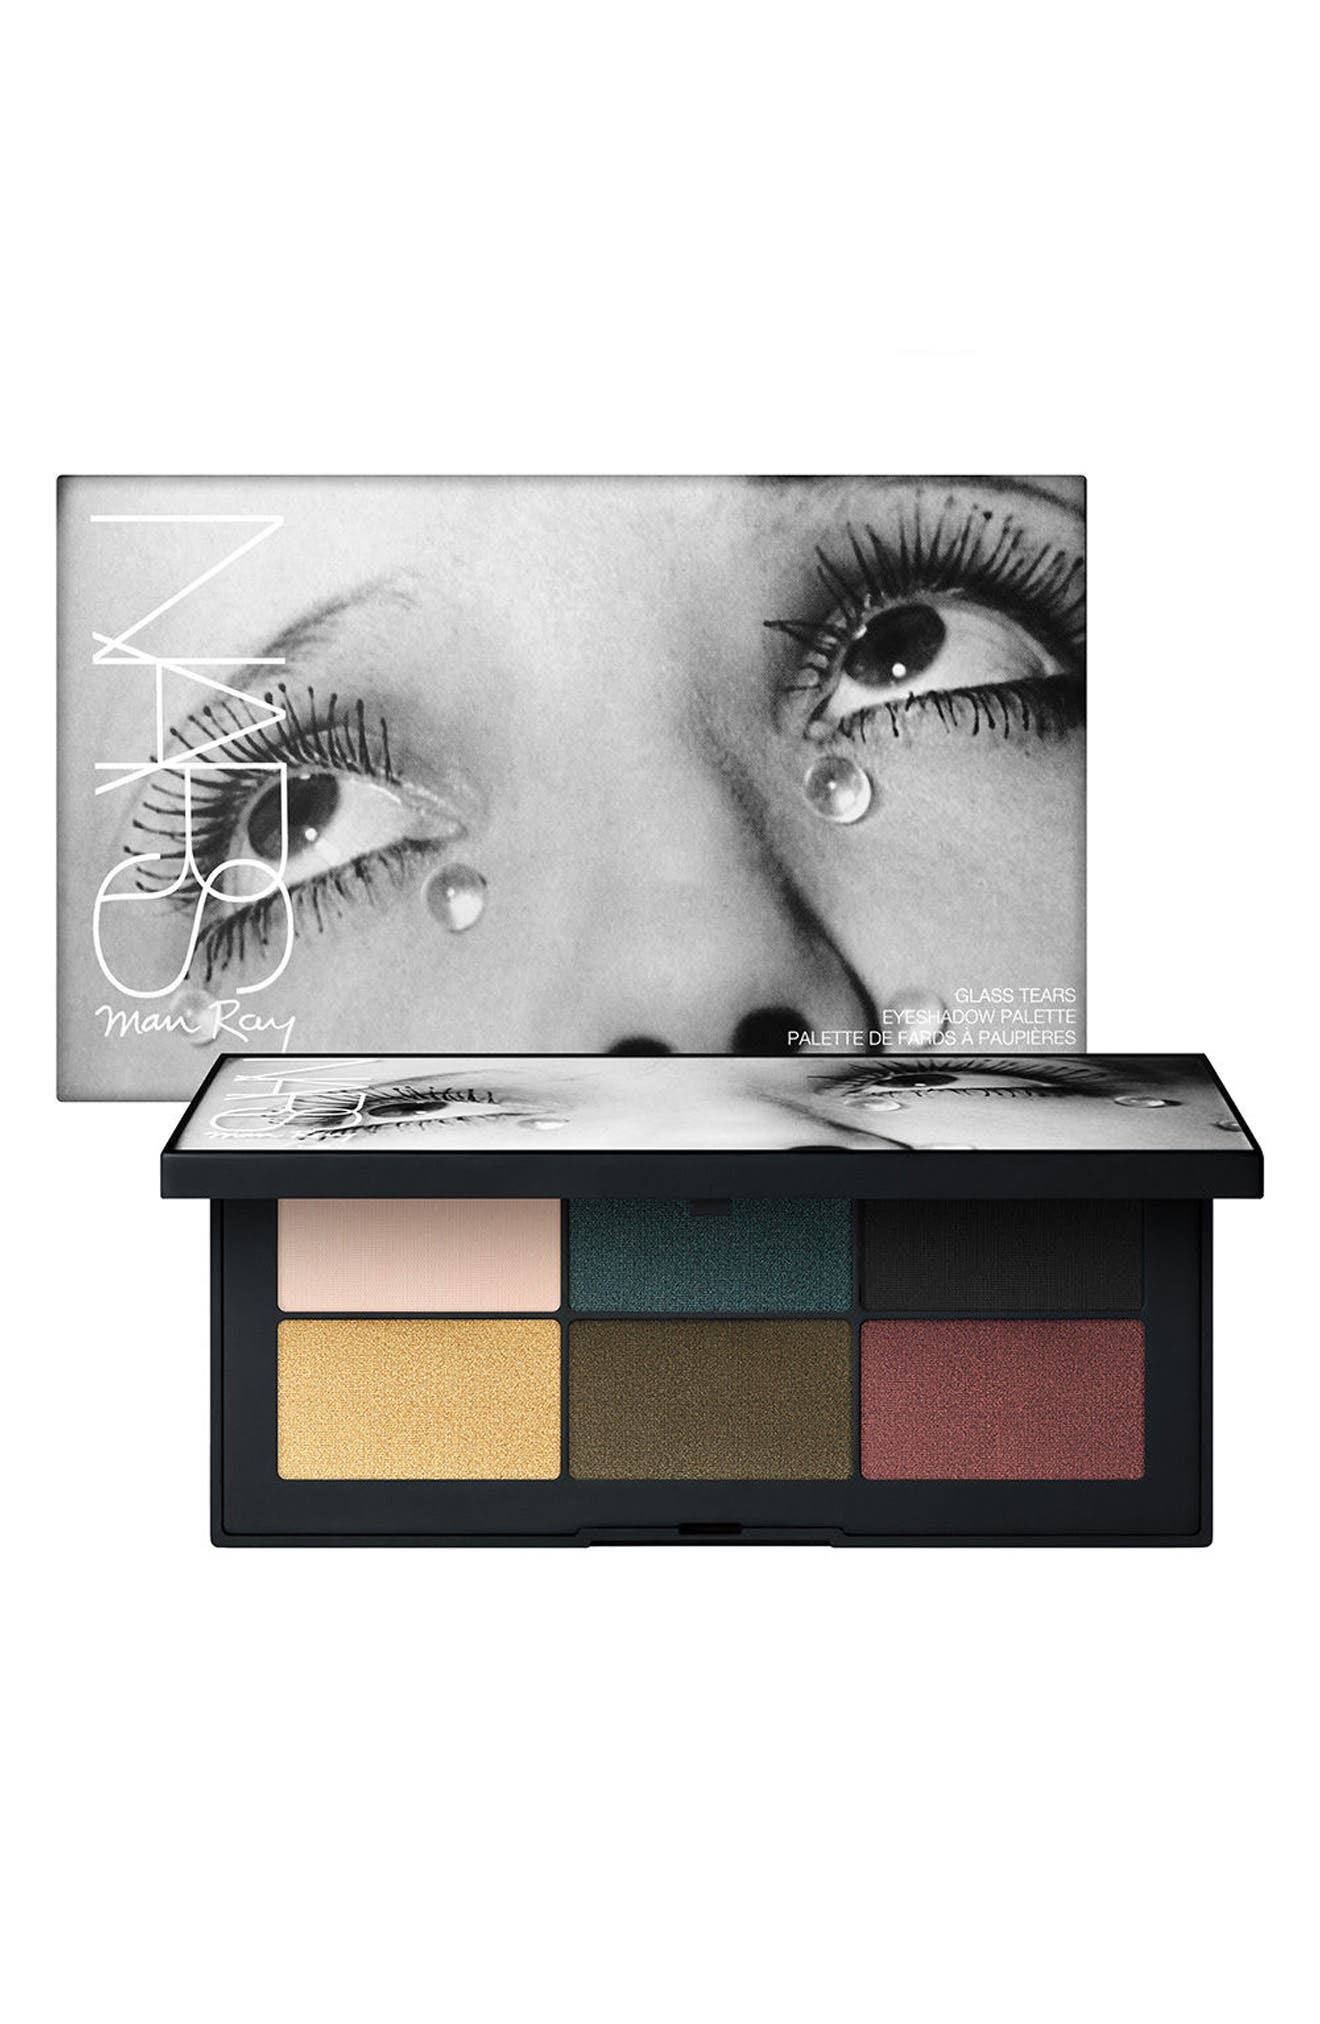 NARS Man Ray Glass Tears Eyeshadow Palette ($155.68 Value)